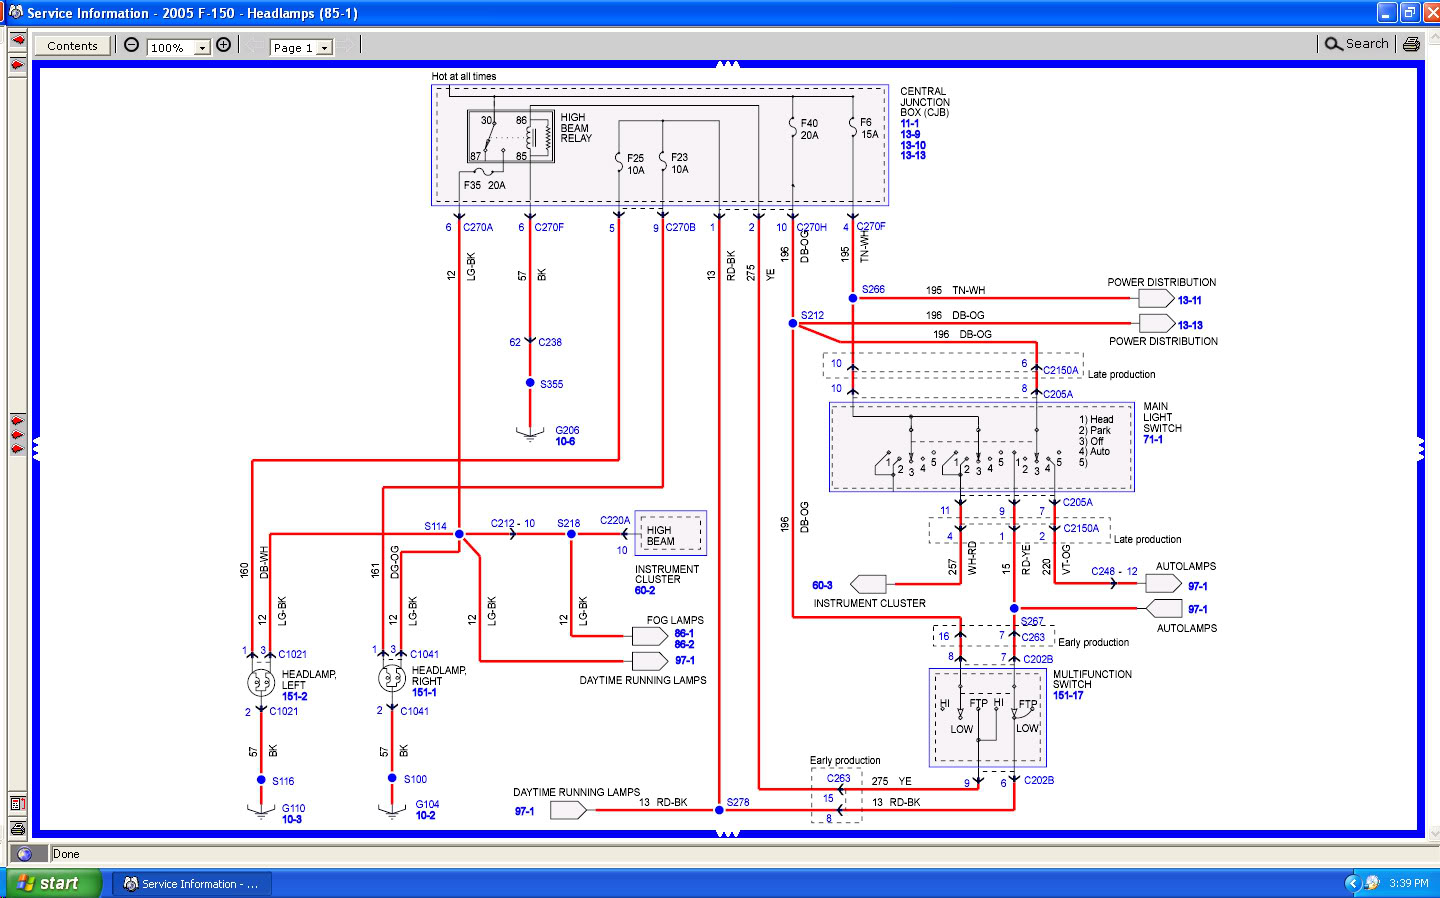 hight resolution of 2007 f150 wiring diagrams wiring diagram schematics rh ksefanzone com 2007 ford f150 radio wiring diagram 2007 ford f150 radio wiring diagram